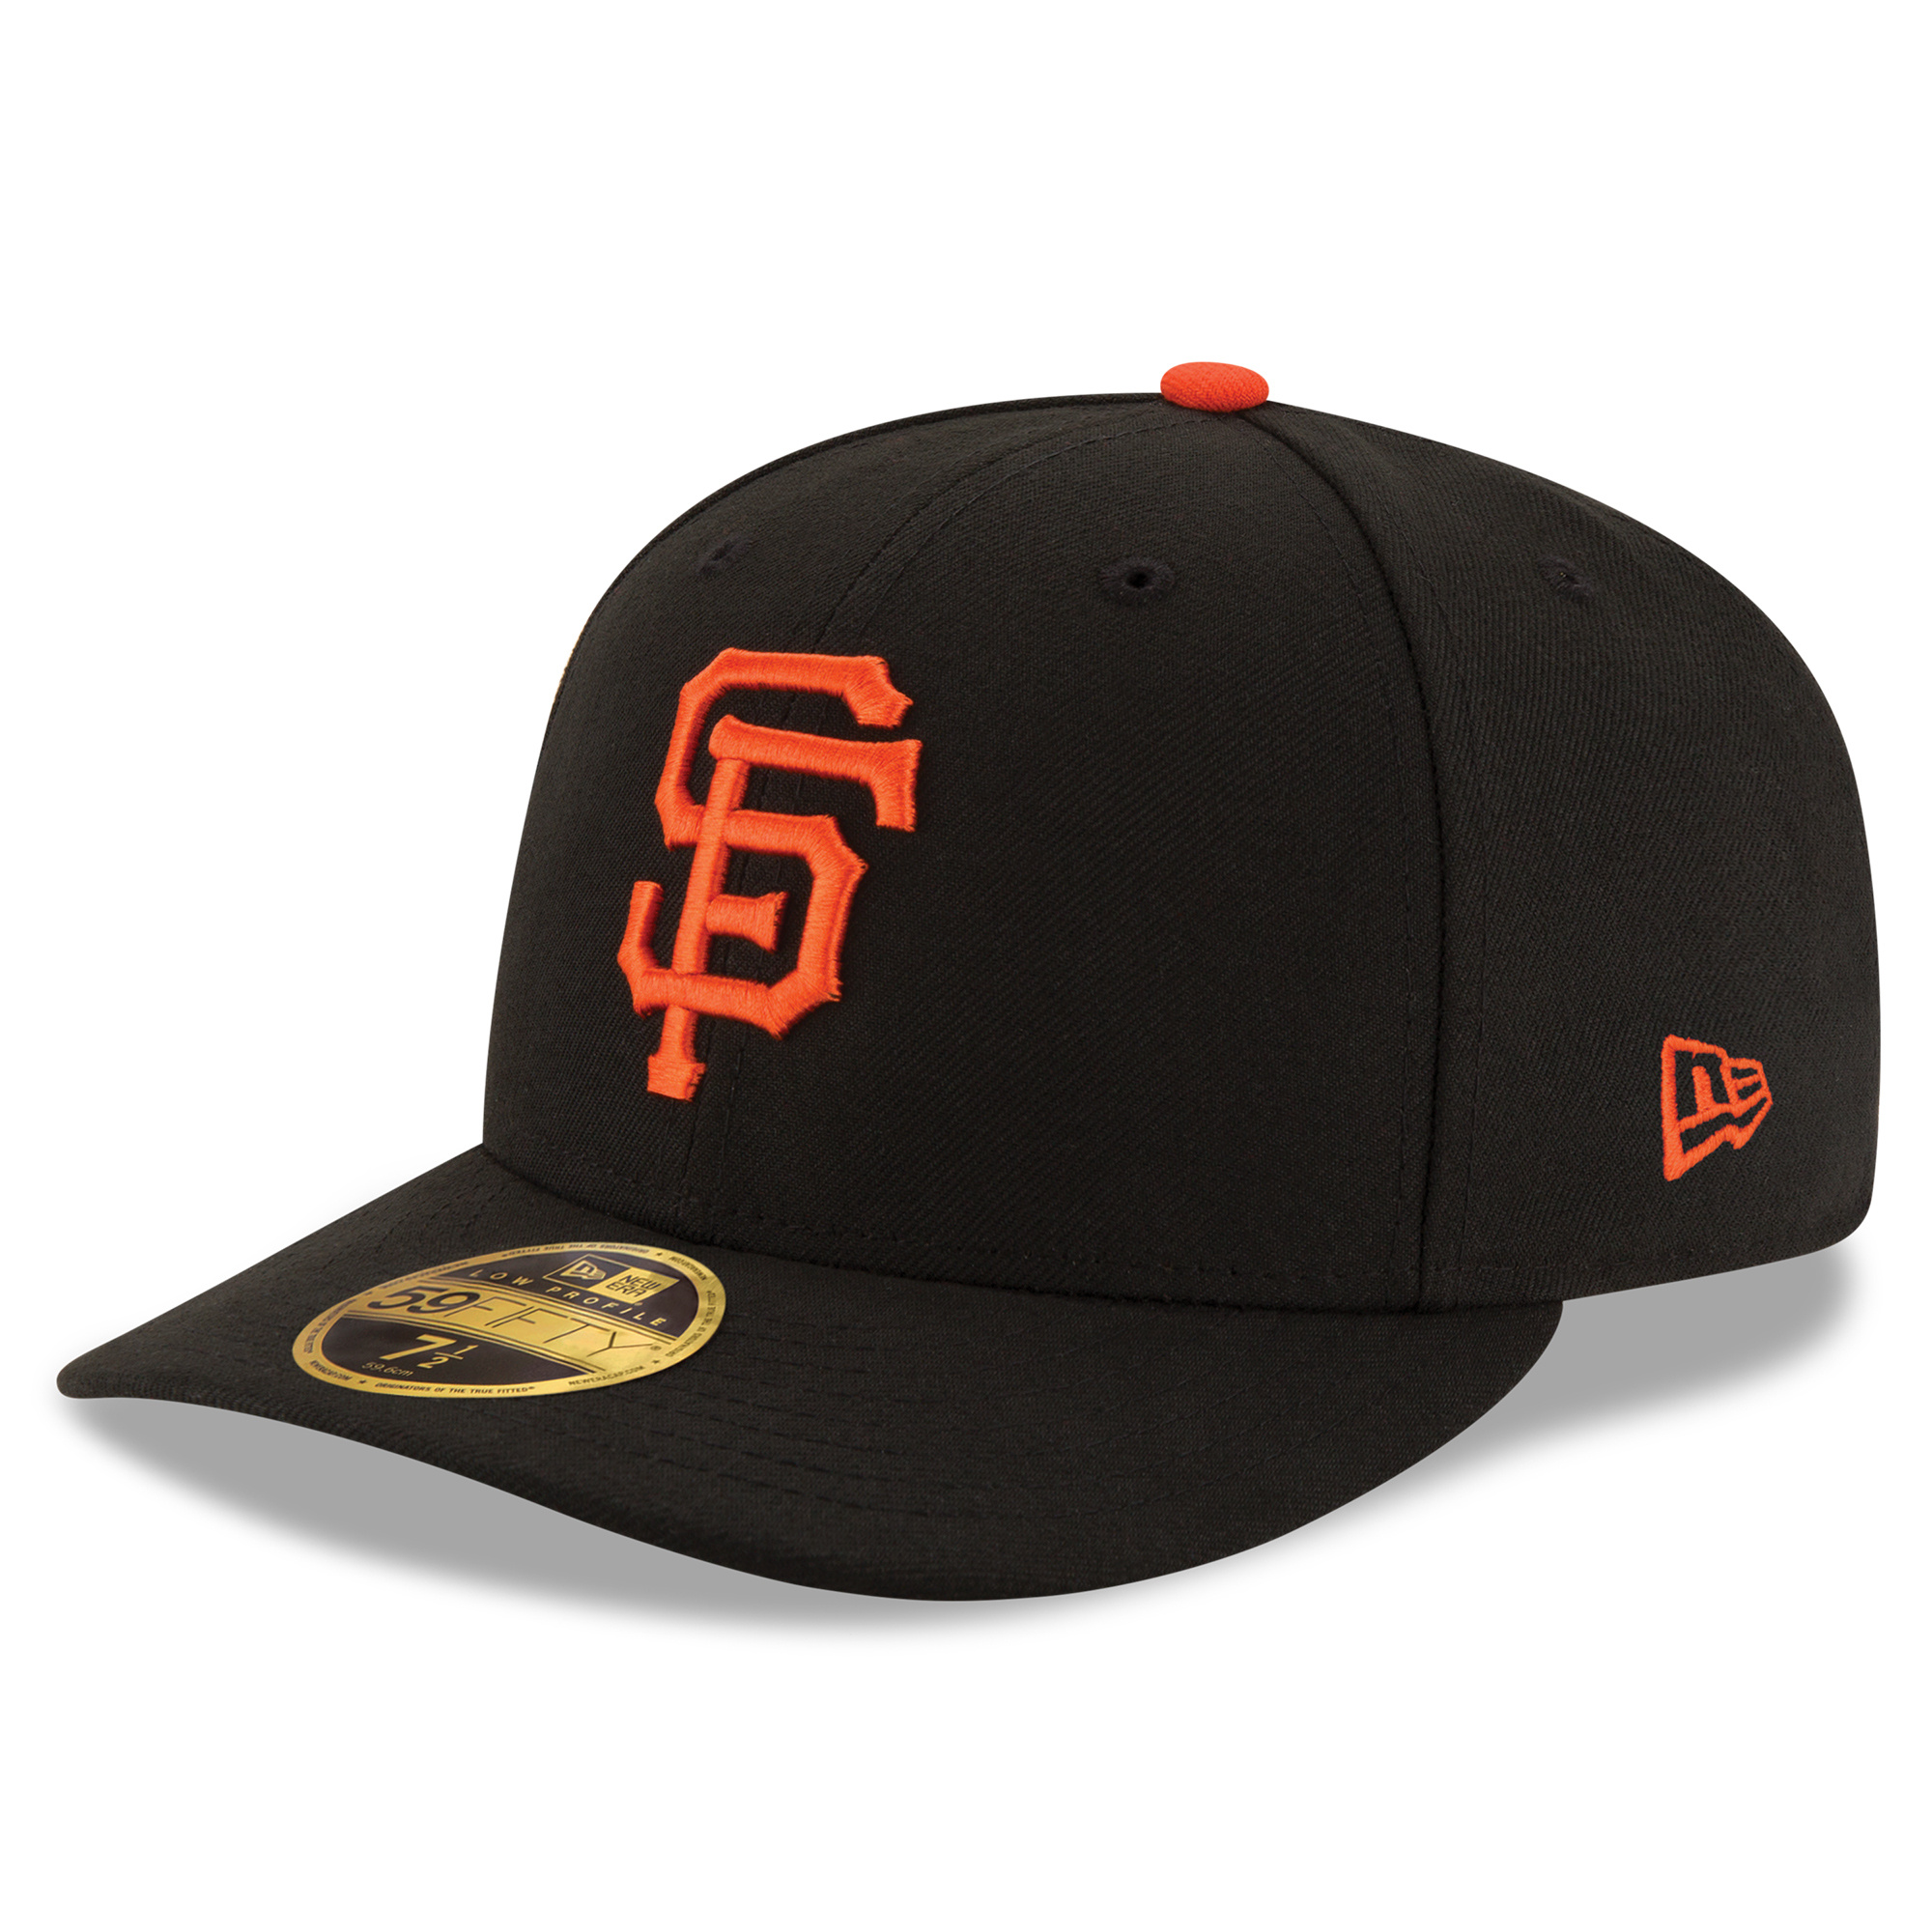 San Francisco Giants New Era Authentic Collection On Field Low Profile Game 59FIFTY Fitted Hat - Black